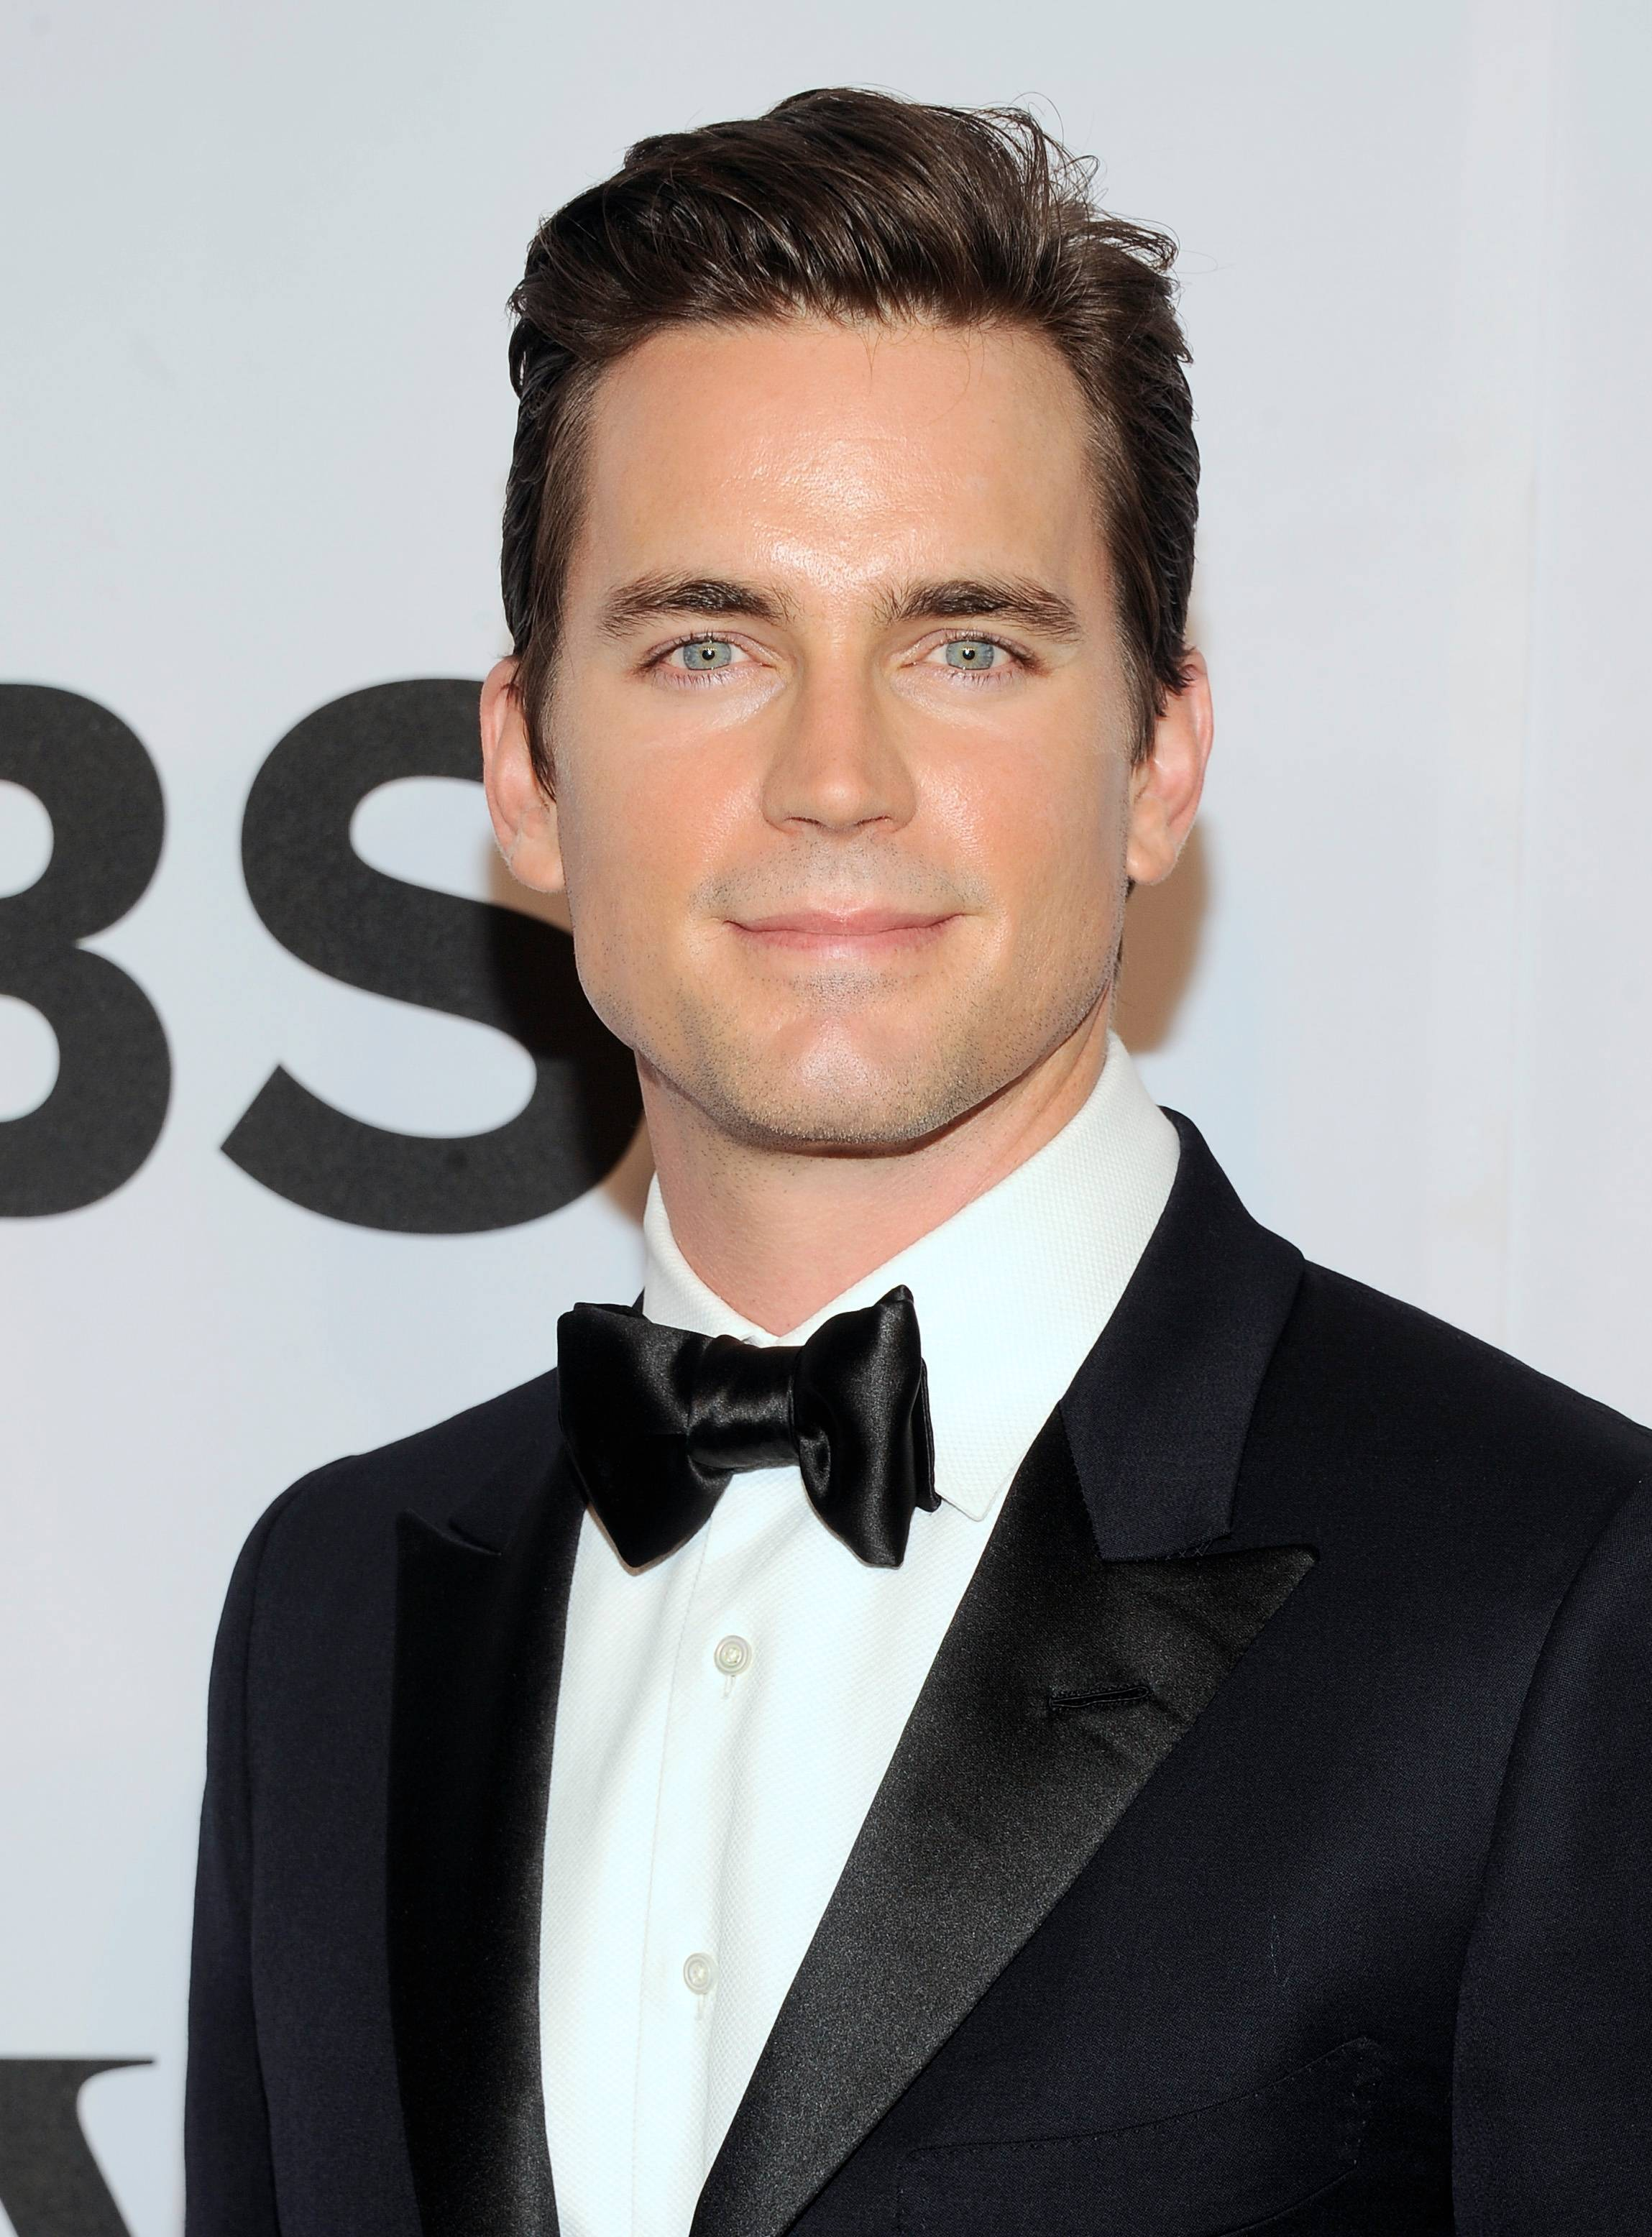 Matt Bomer arrives at the 68th annual Tony Awards at Radio City Music Hall on Sunday.